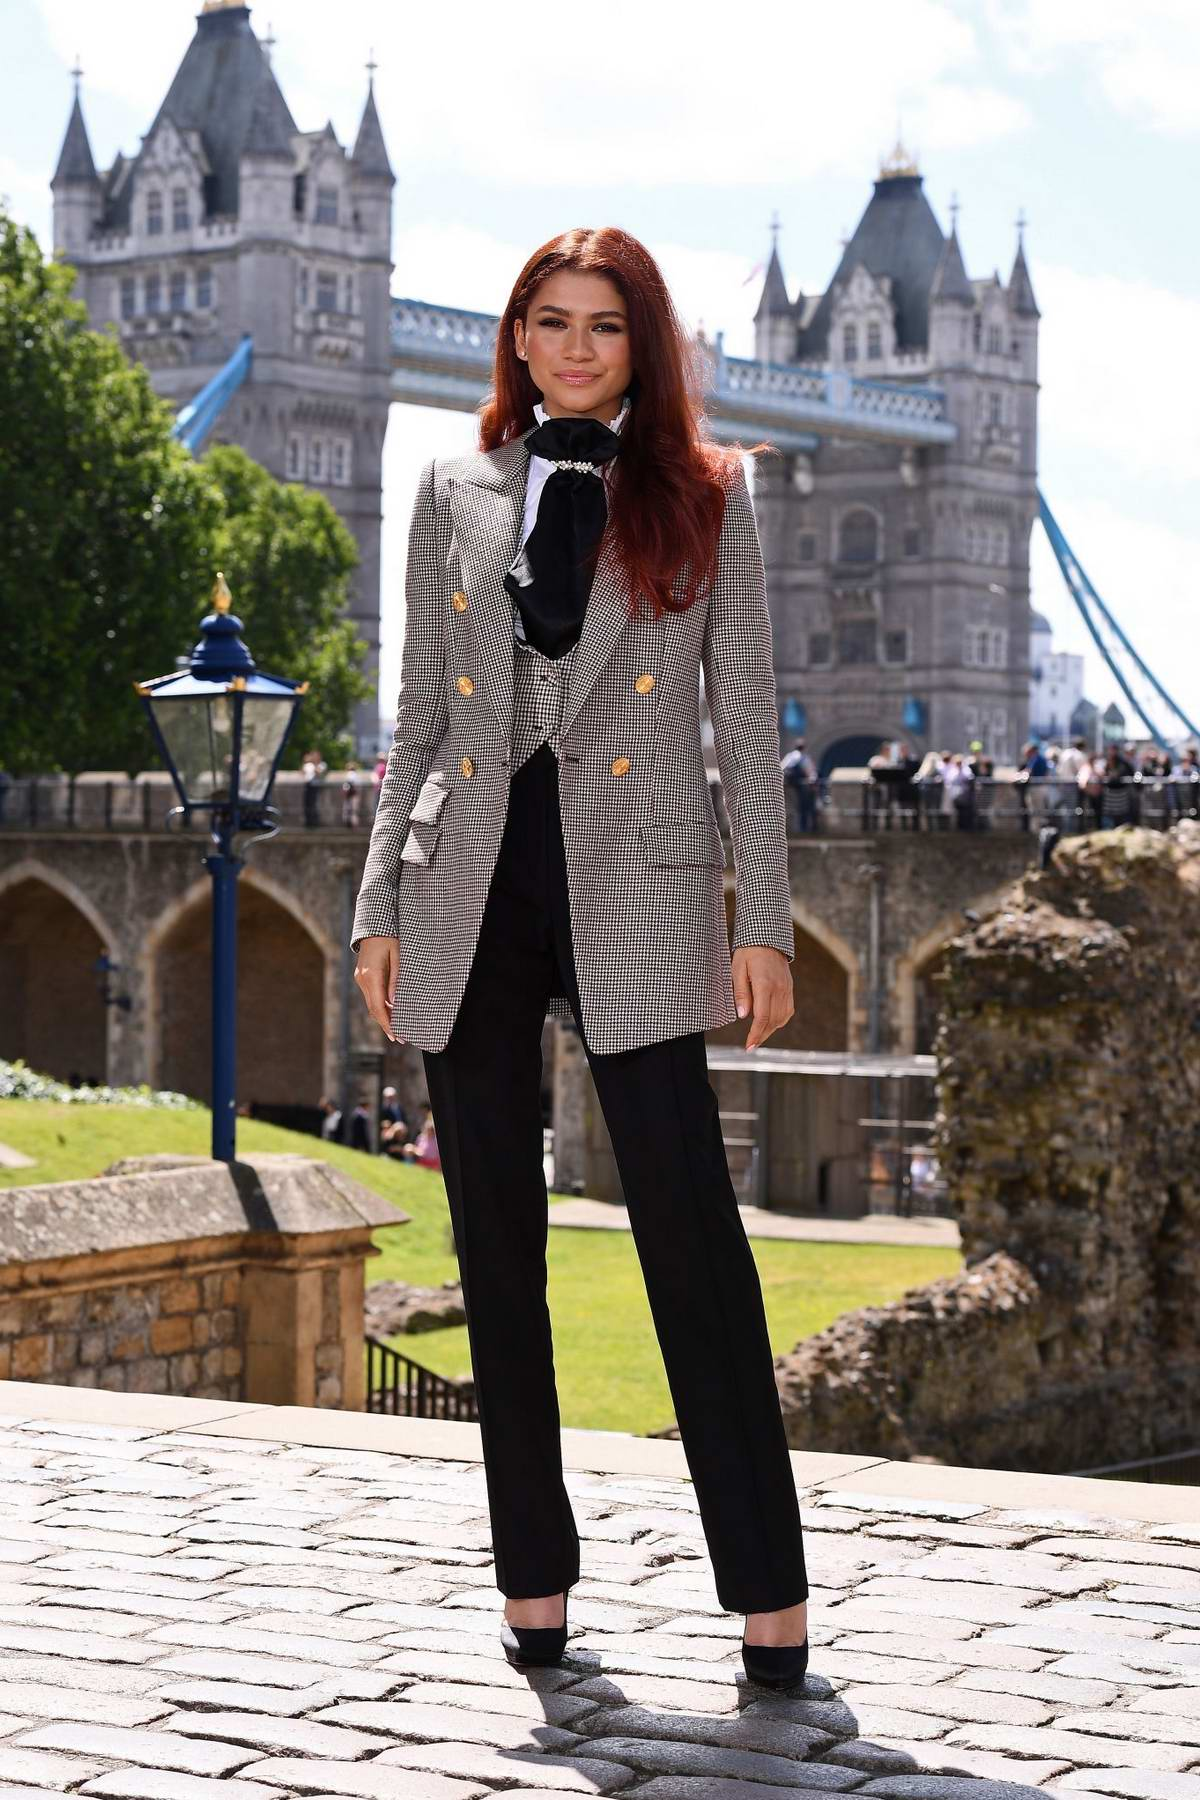 Zendaya Coleman attends 'Spider-Man: Far From Home' photocall in London, UK